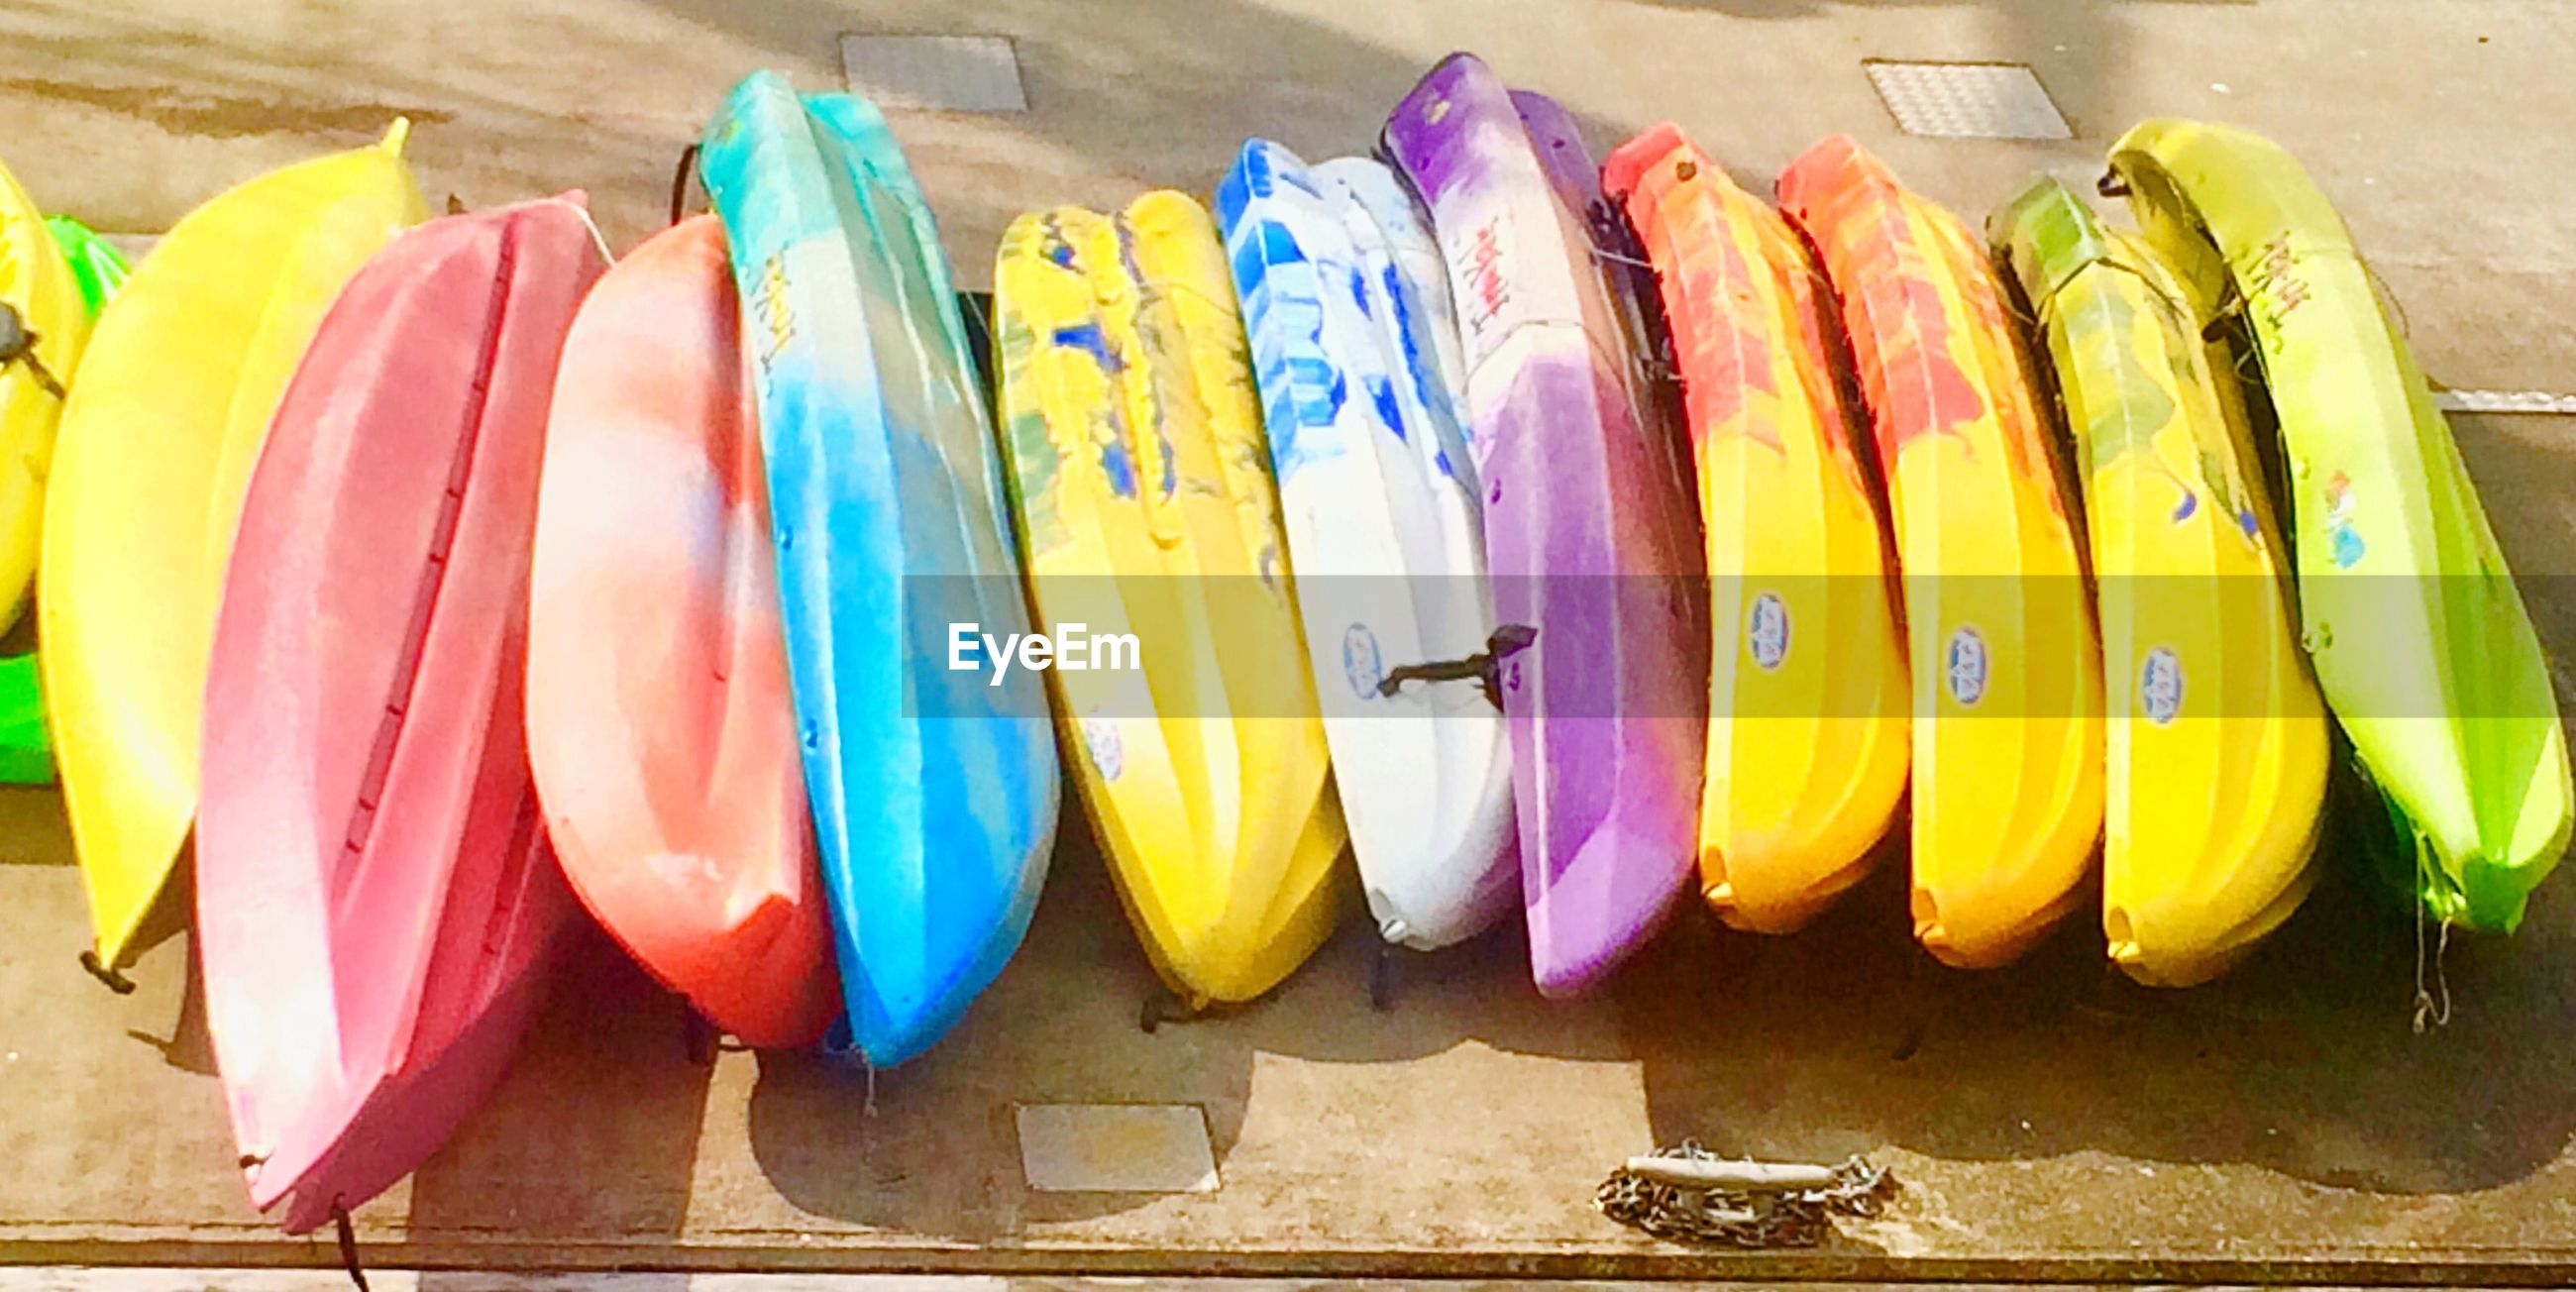 ROW OF COLORFUL OBJECTS